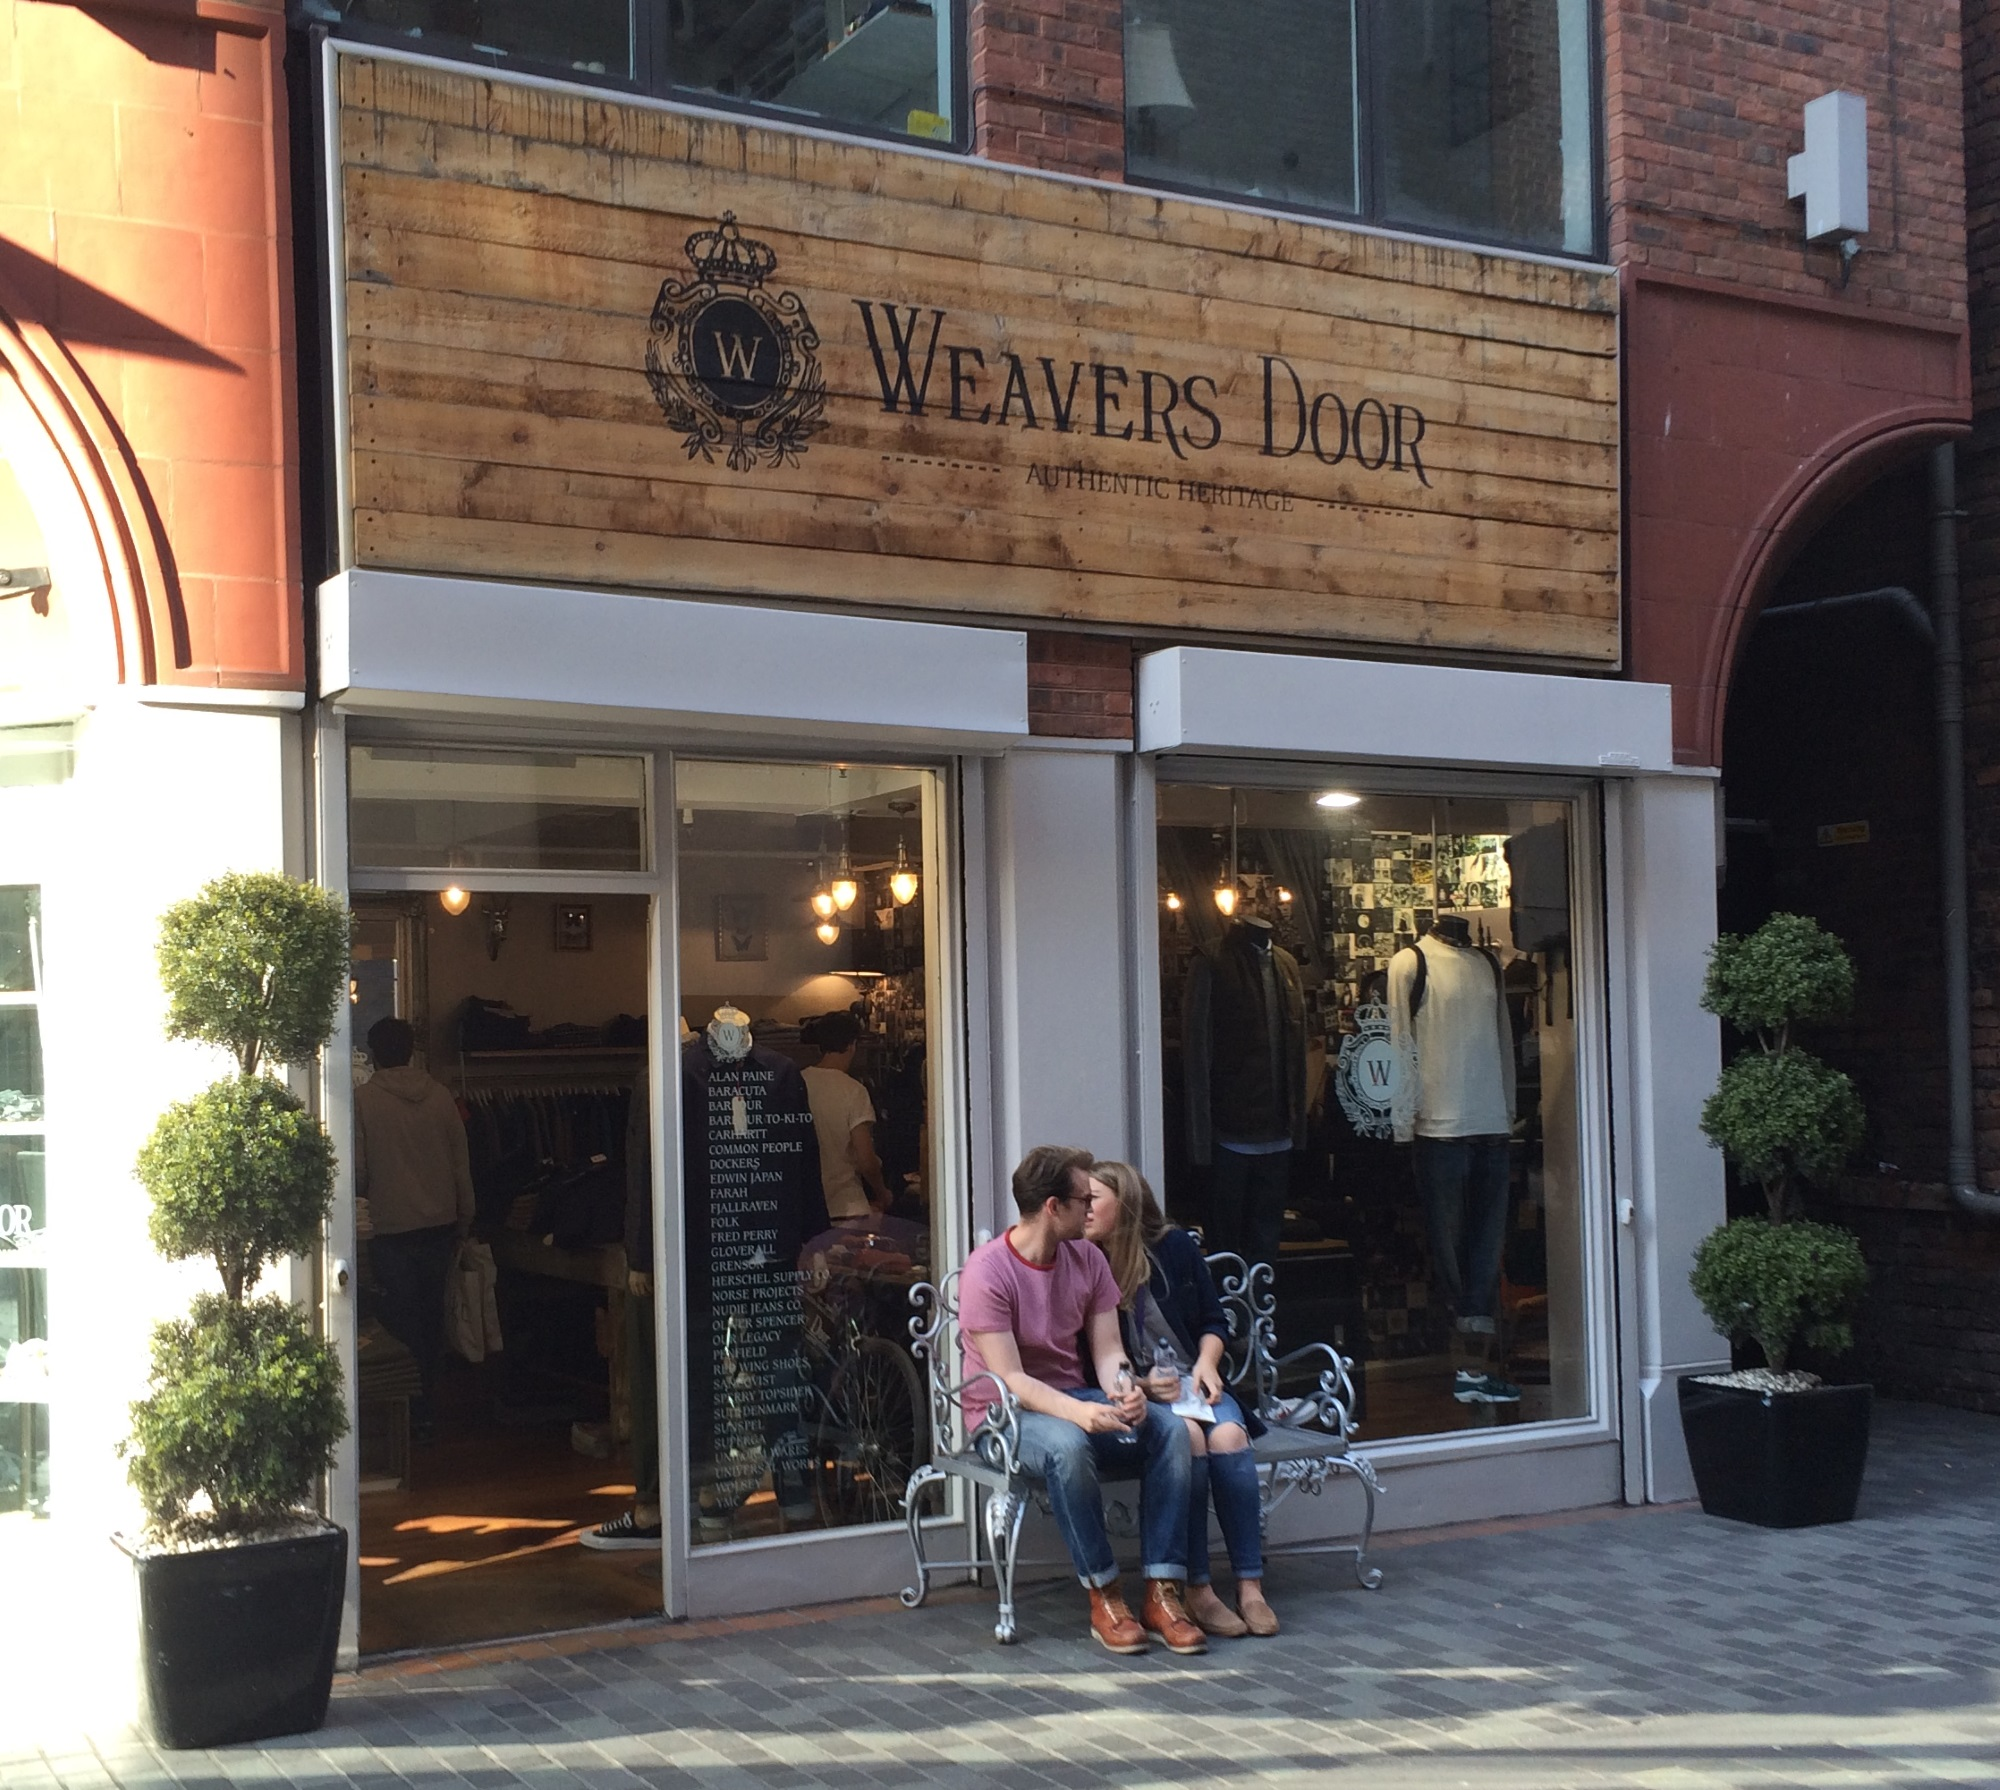 Hen parties galore and massively historic - a weekend in Liverpool - Well Dressed Dad - It is a proper menswear blog. Like with original words and opinions ... & Hen parties galore and massively historic - a weekend in Liverpool ...